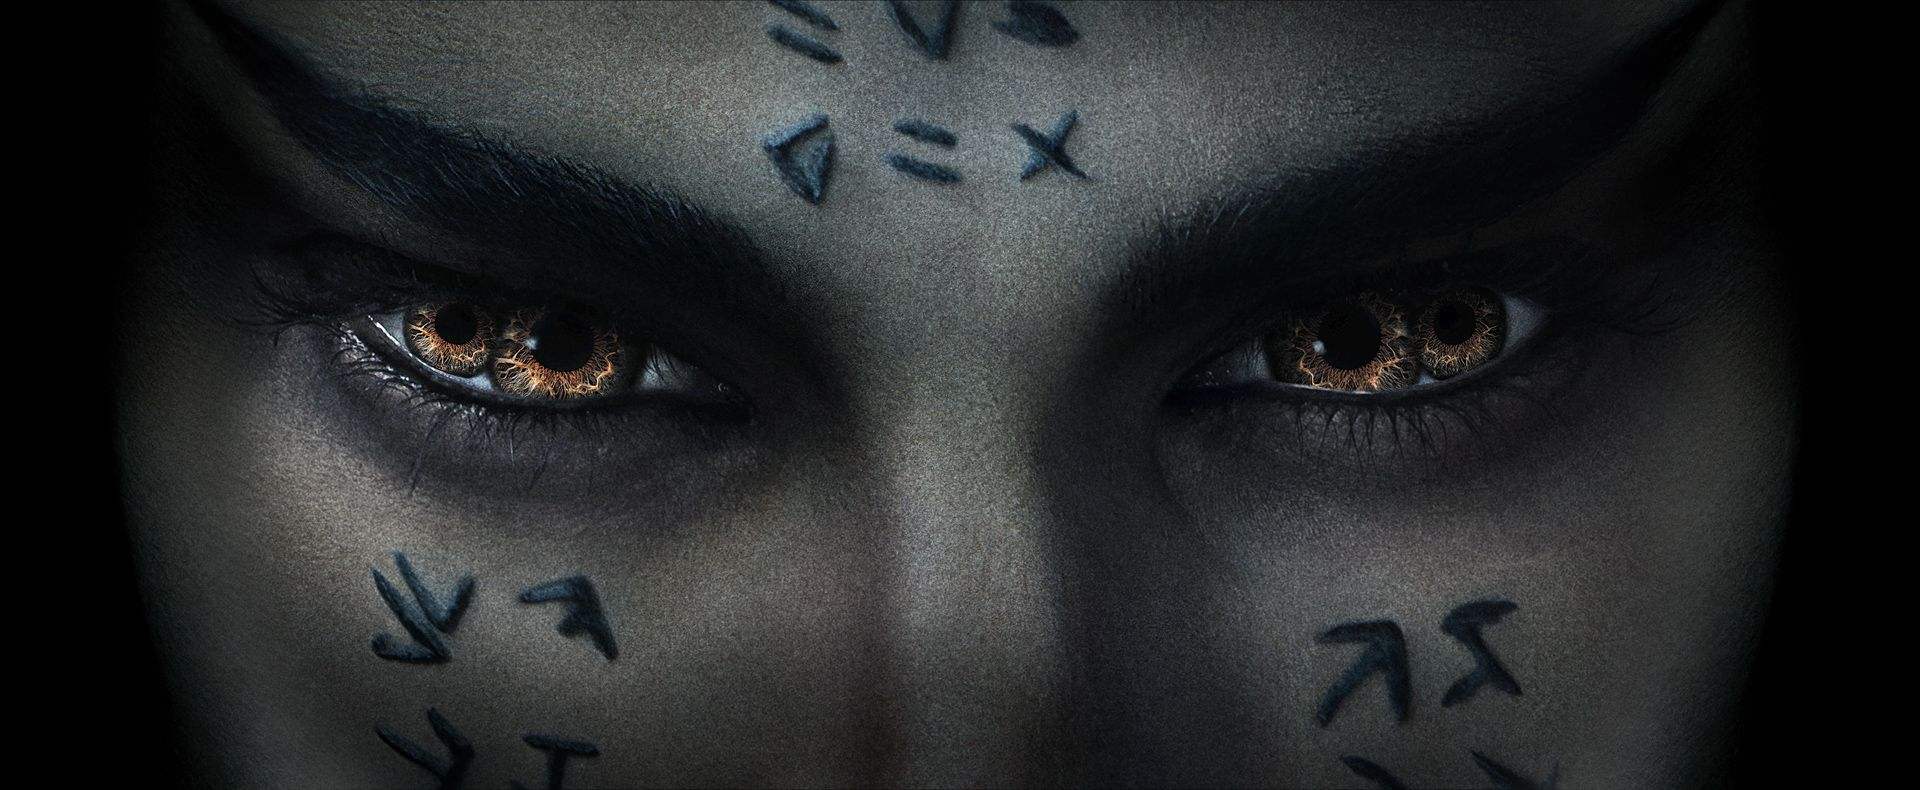 Official movie site for The Mummy, starring Tom Cruise. Watch the new Mummy trailer here. June 9, 2017